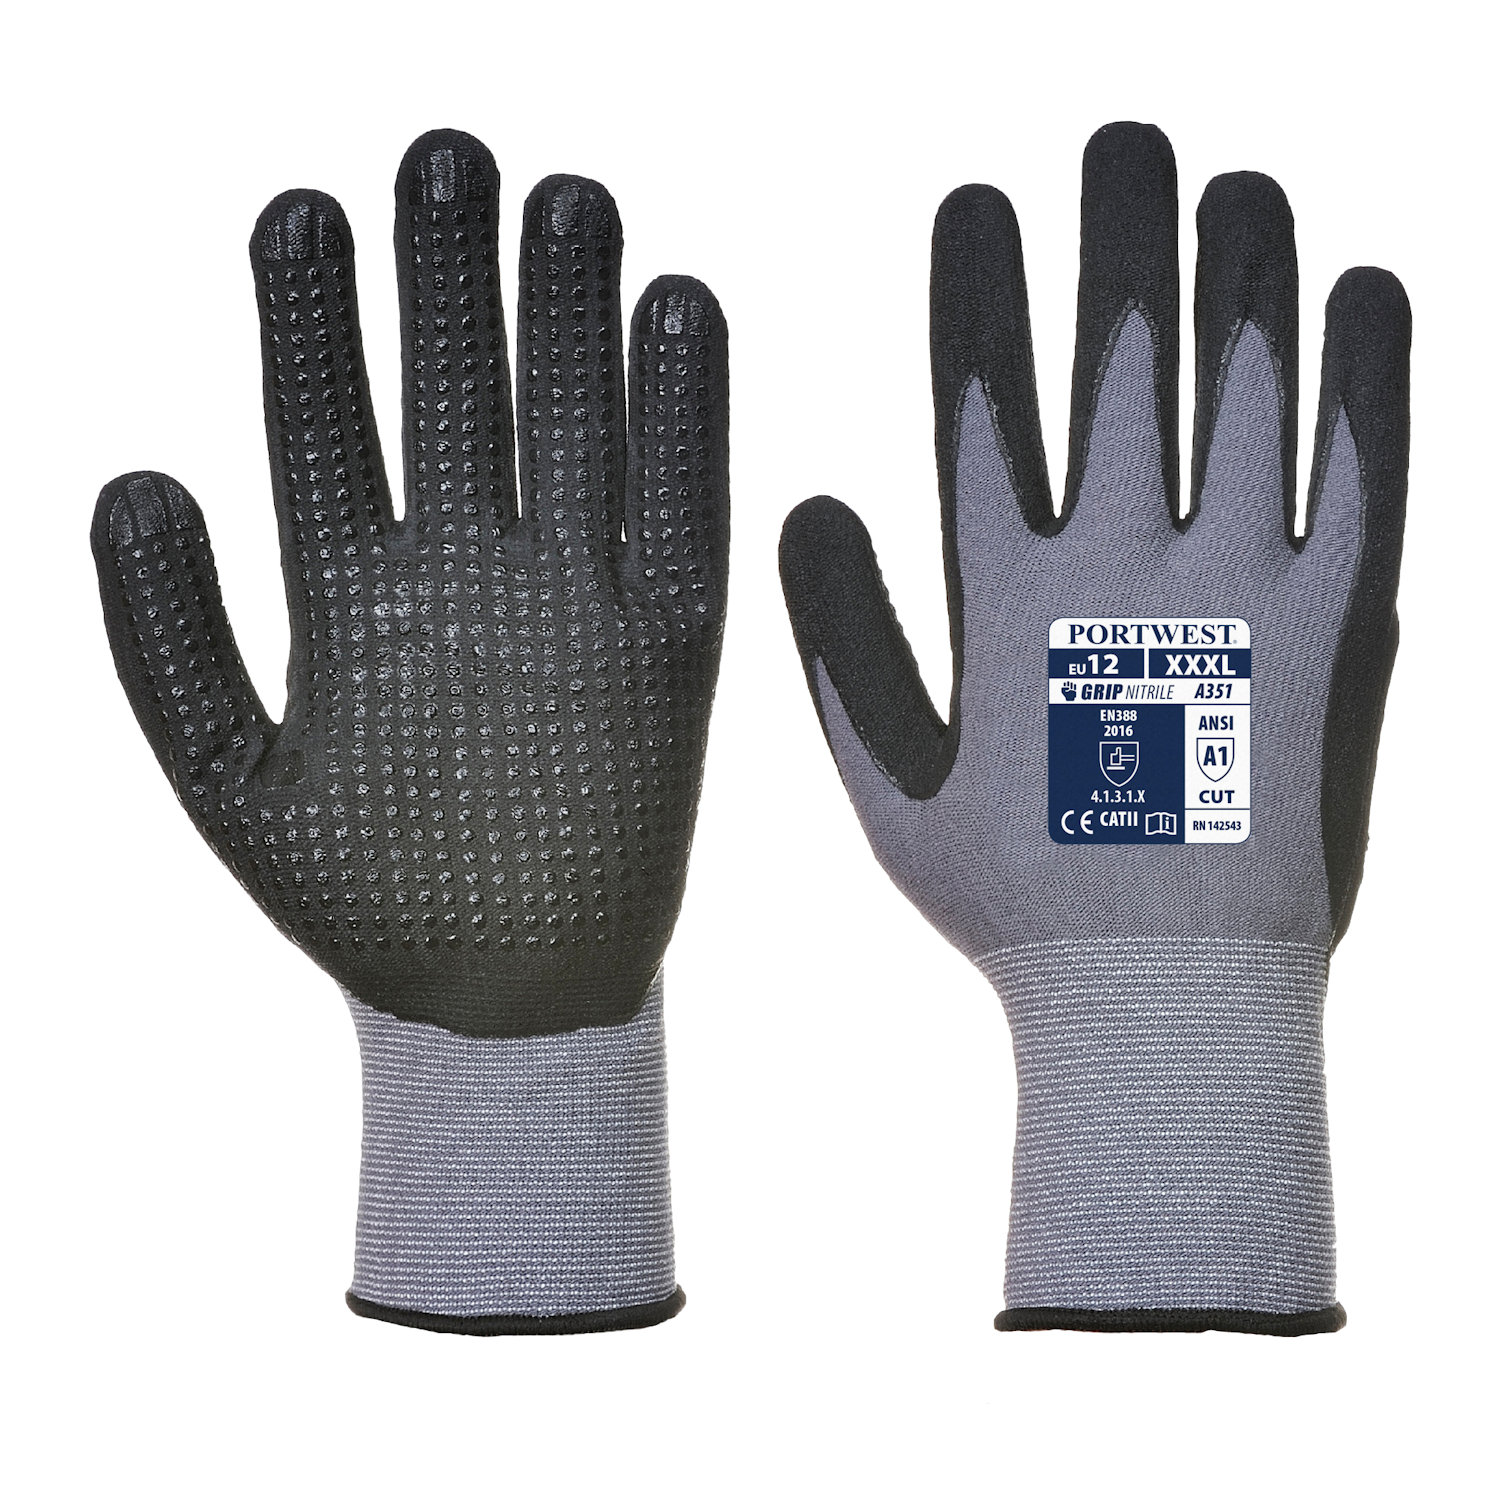 portwest a351 dermiflex gloves